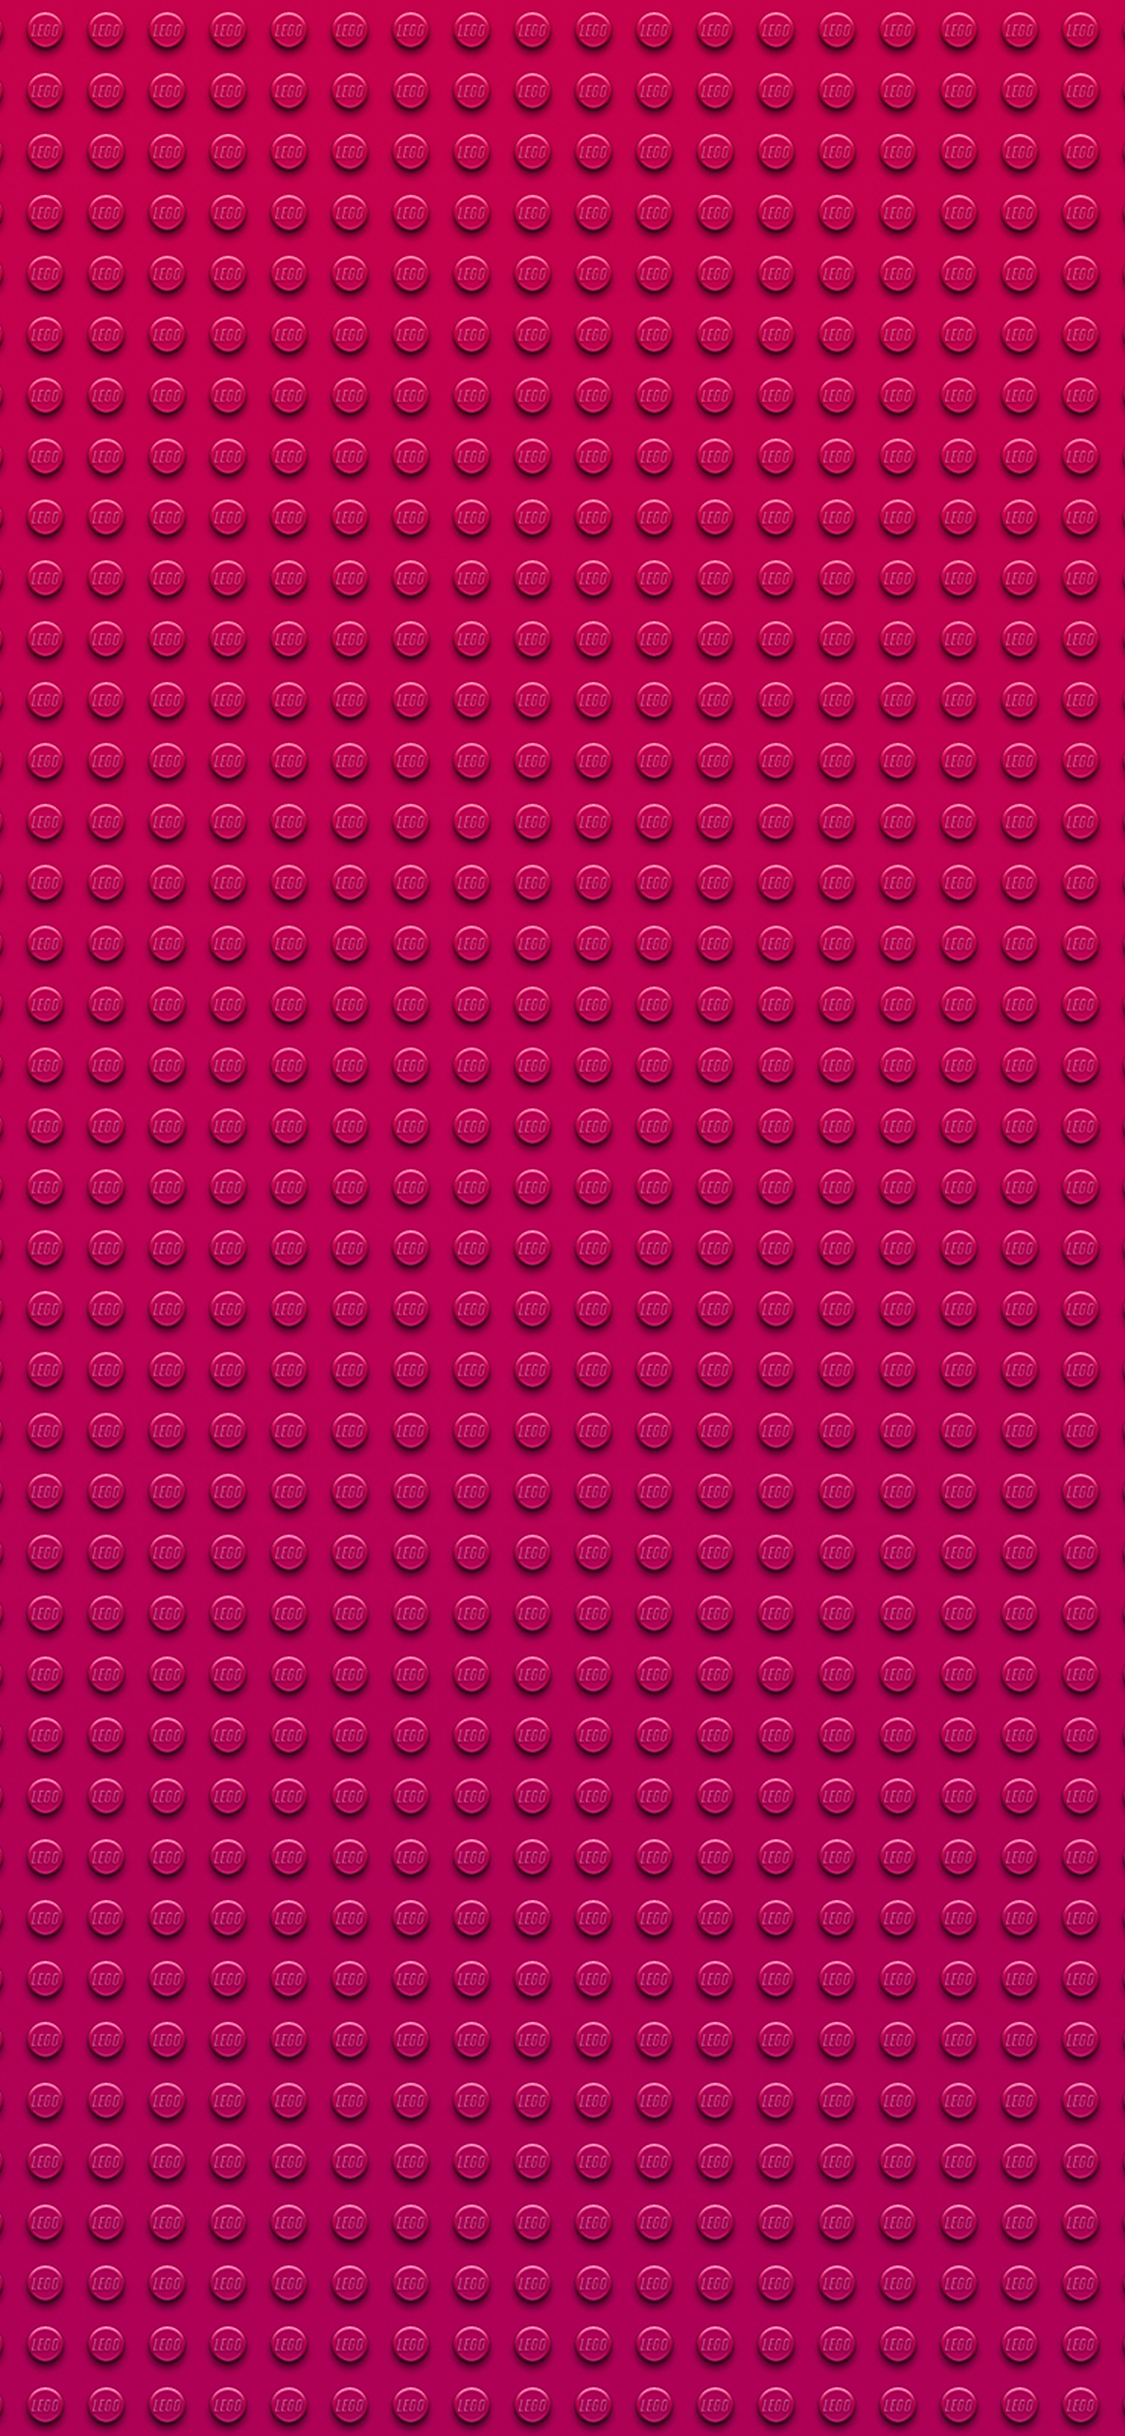 iPhoneXpapers.com-Apple-iPhone-wallpaper-vf32-lego-toy-red-block-pattern